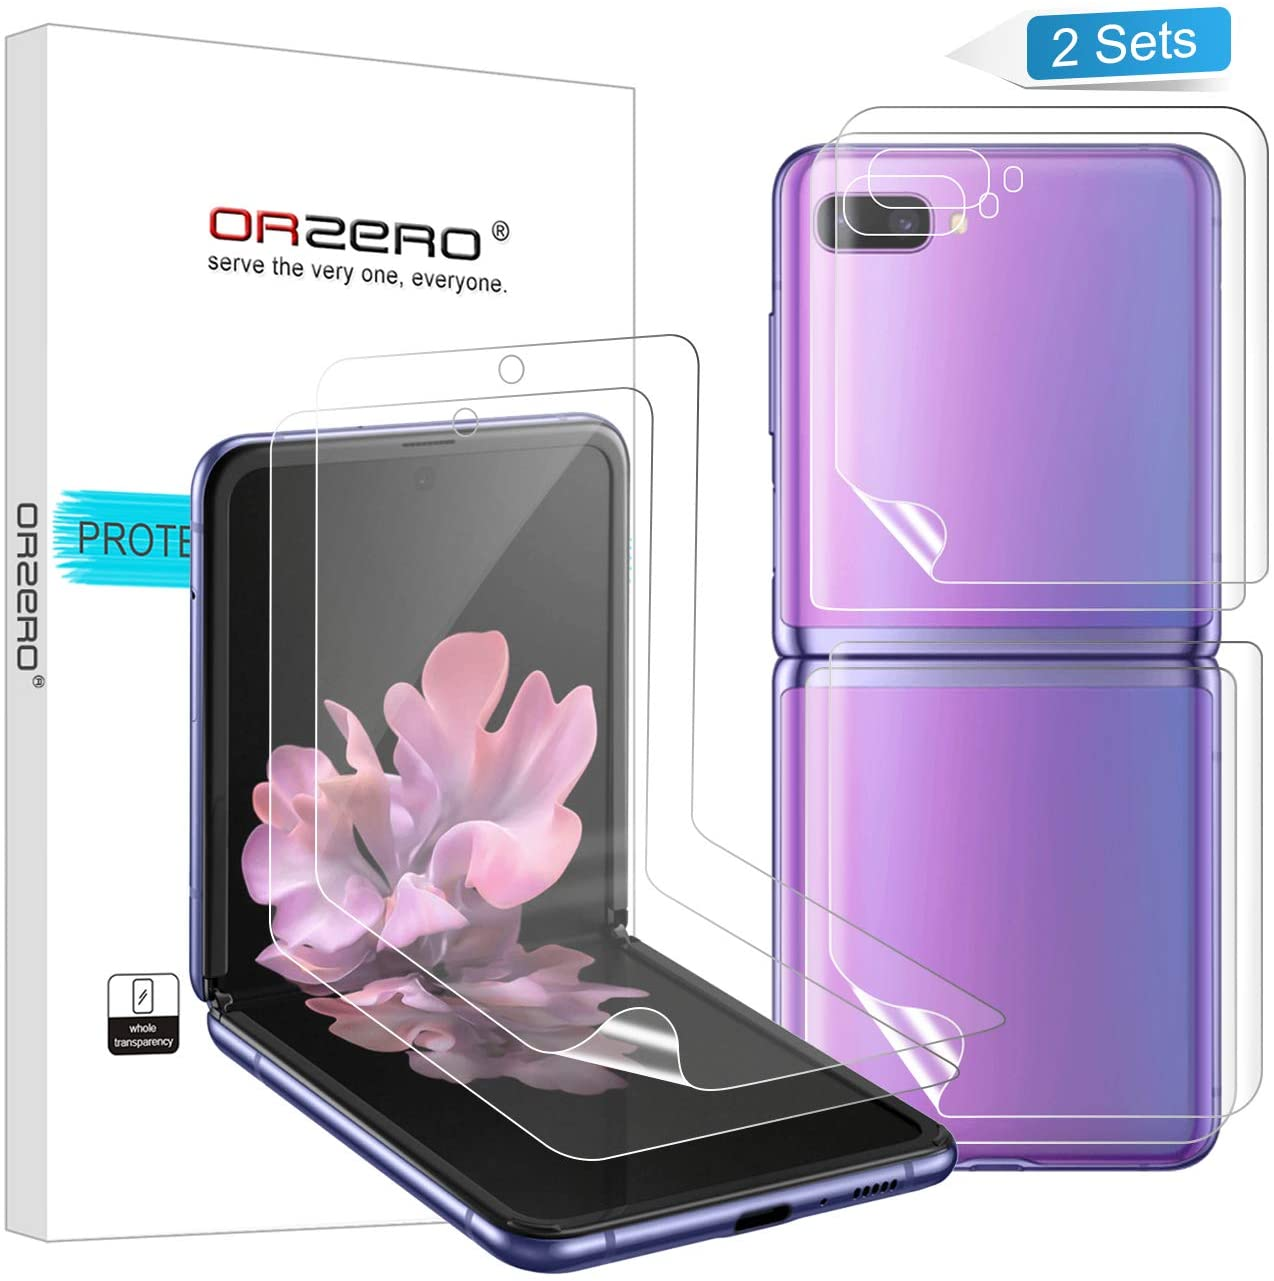 (2 Sets) Orzero Compatible for Samsung Galaxy Z Flip, Samsung Galaxy Z Flip 5G (Premium Quality) Edge to Edge (Full Coverage) Screen Protector, High Definition Anti-Scratch Bubble-Free (Lifetime Replacement)